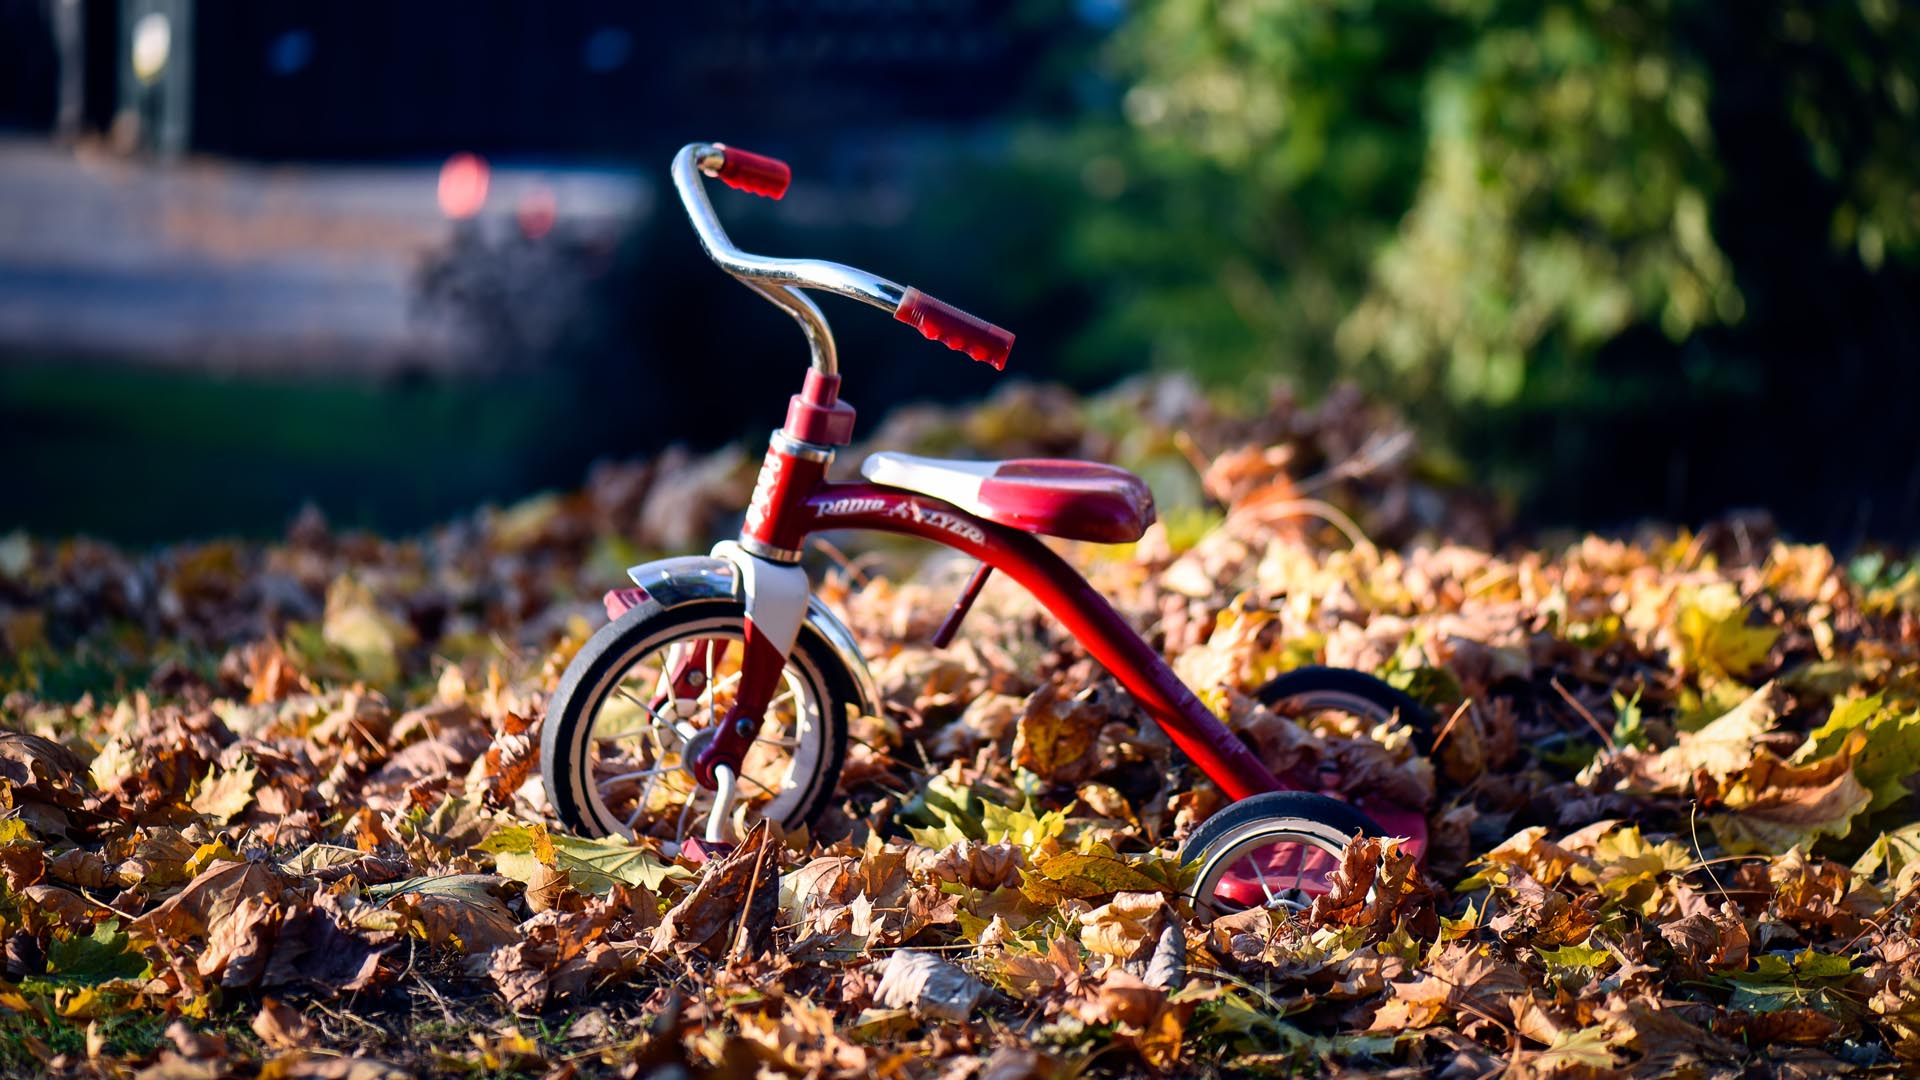 fall-leaves-tricycle-unsp.jpg